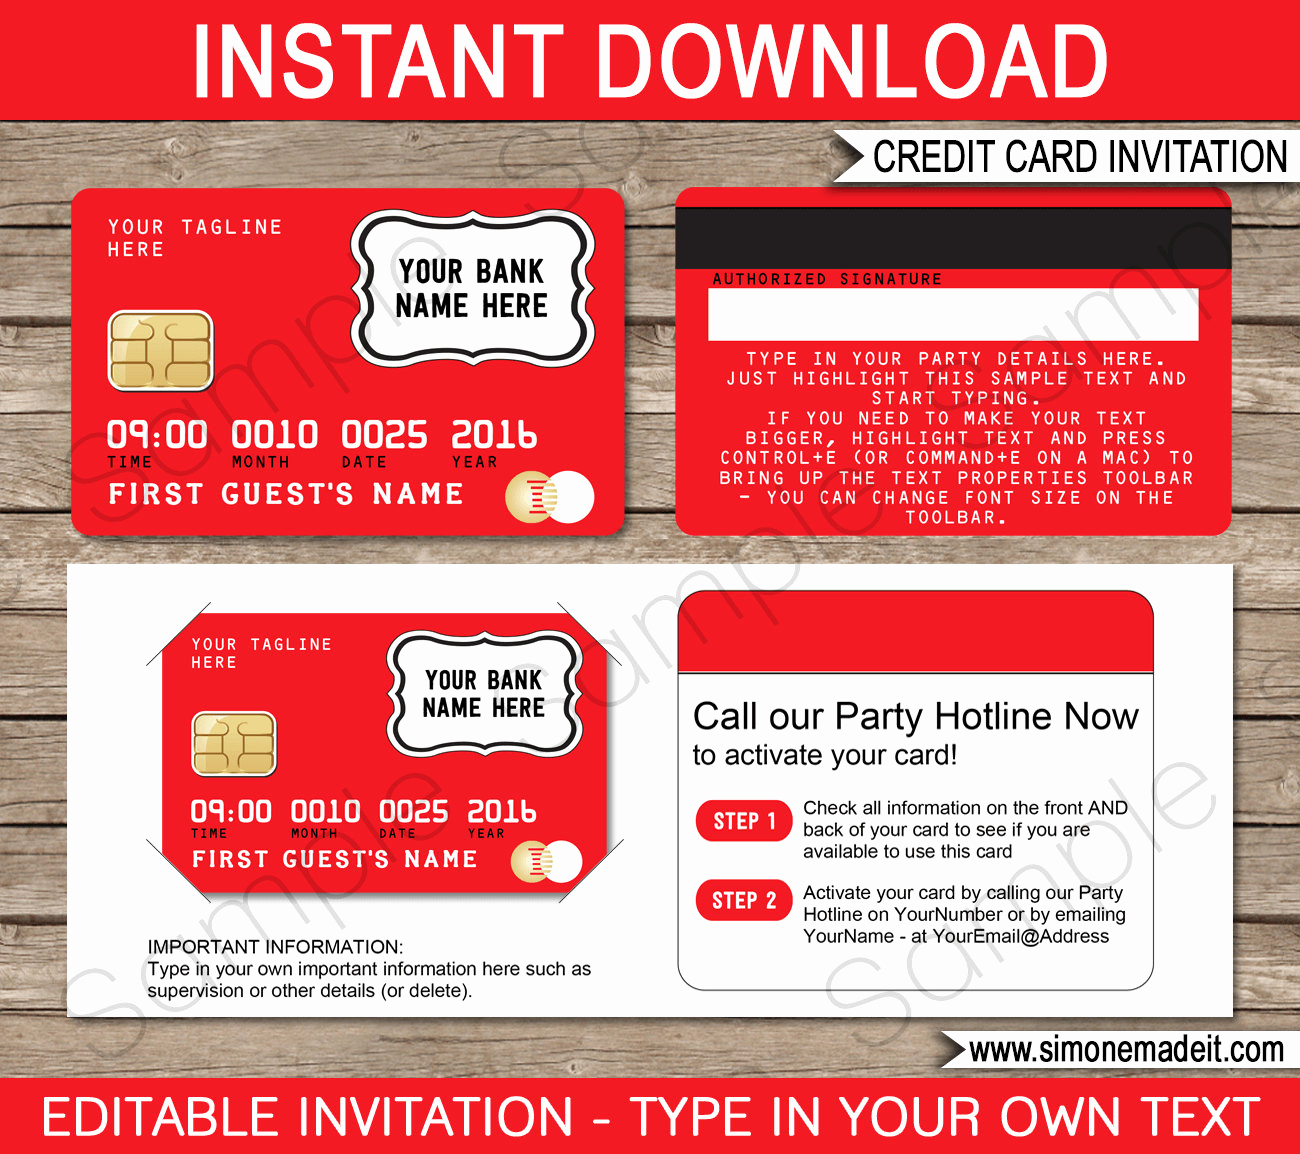 Credit Card Invitation Template Best Of Credit Card Invitation Template Mall Scavenger Hunt Red